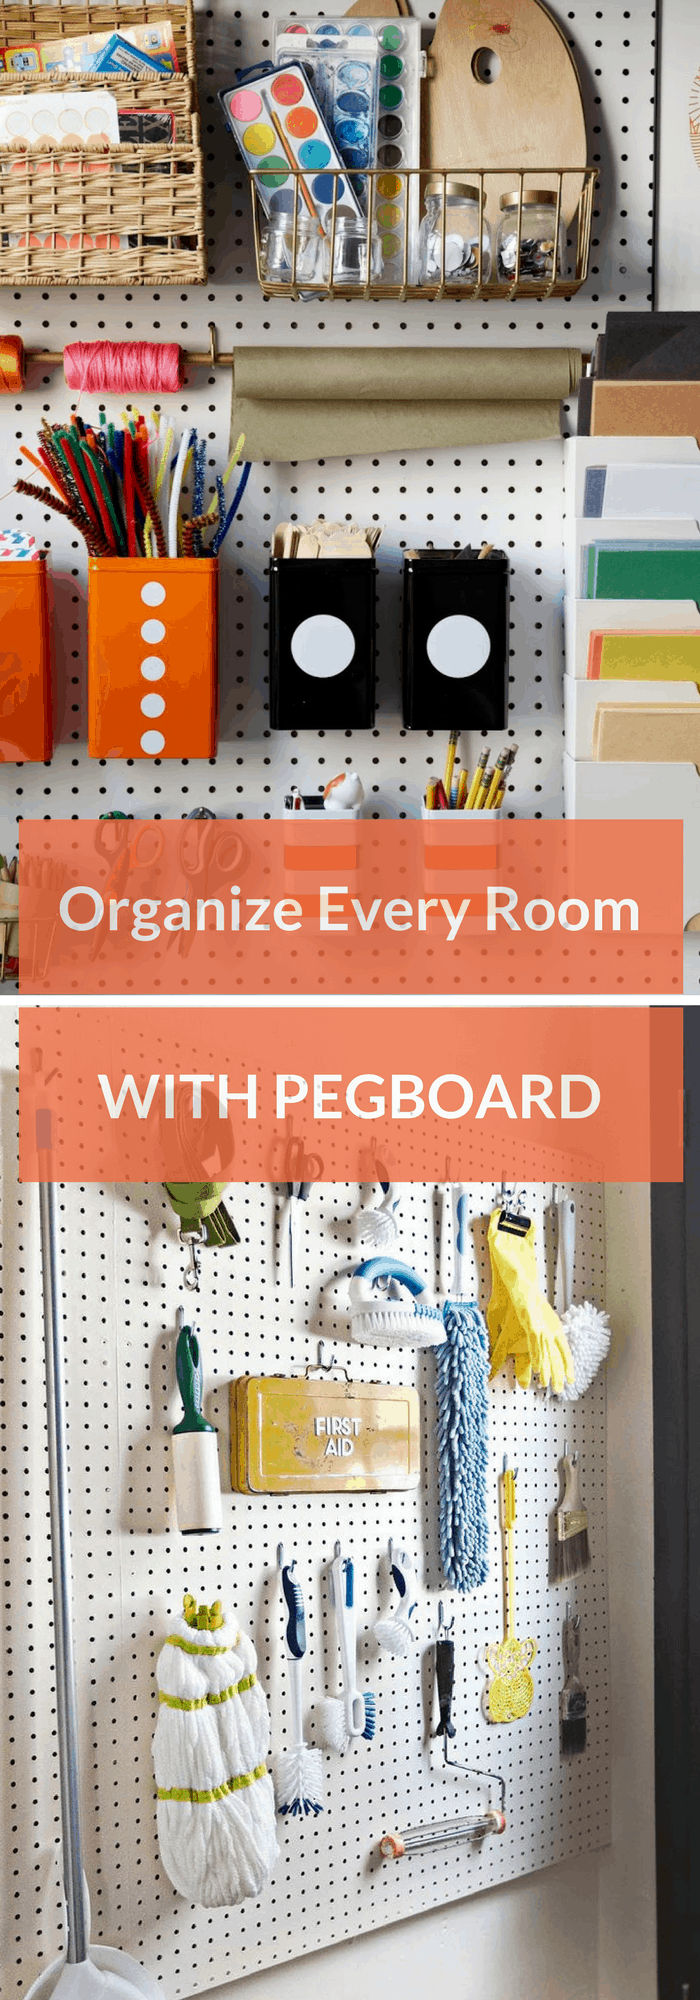 Organize every room with a pegboard